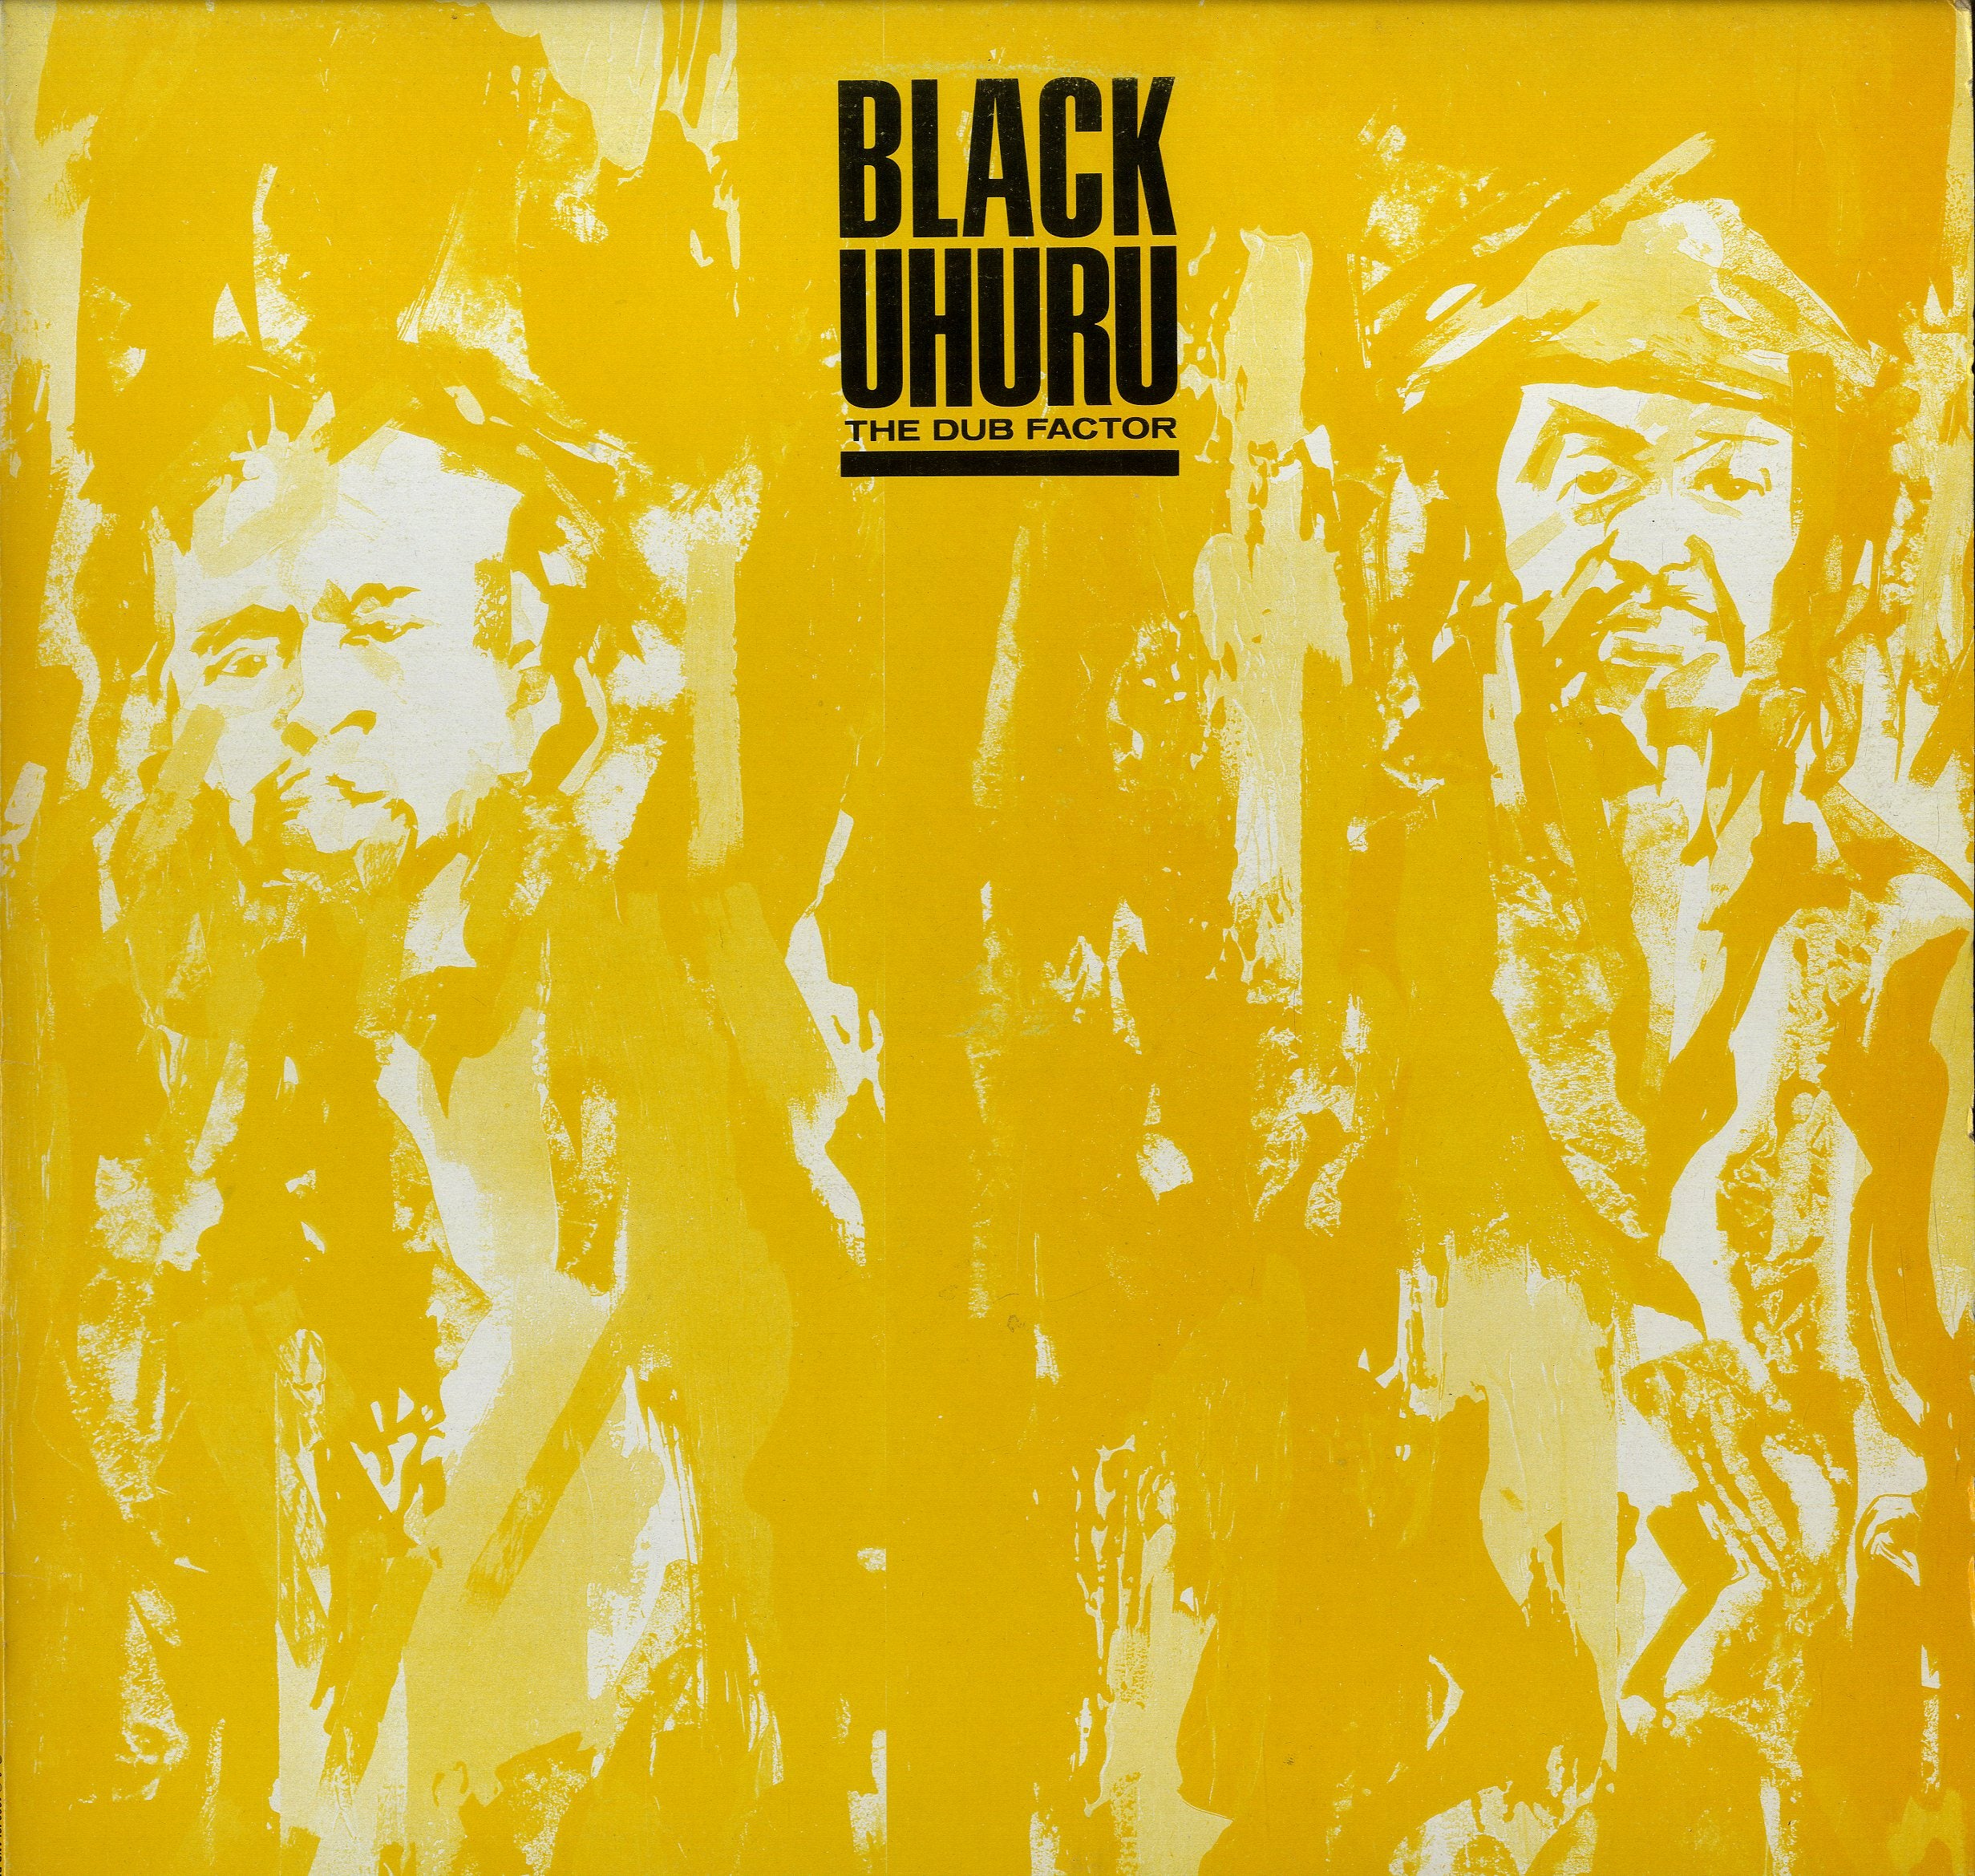 BLACK UHURU [The Dub Factor]